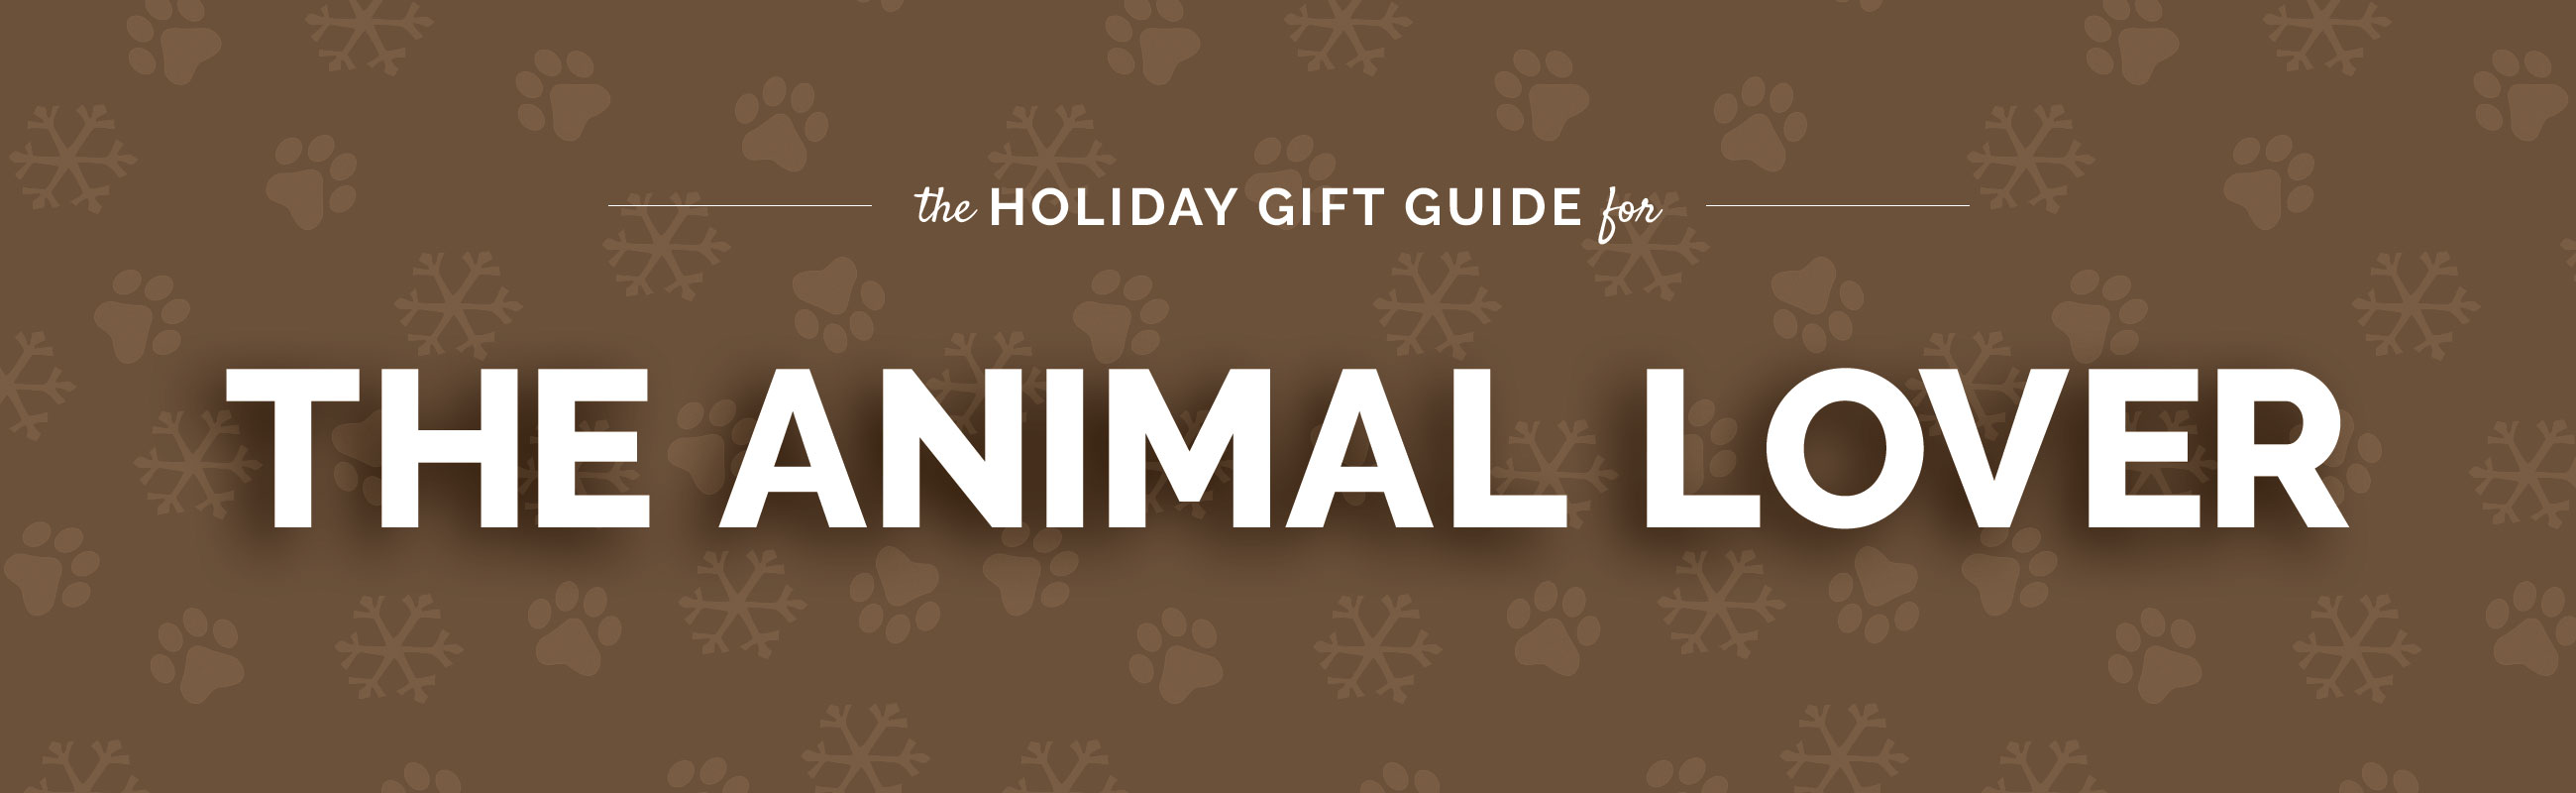 The Animal Lover Gift Guide